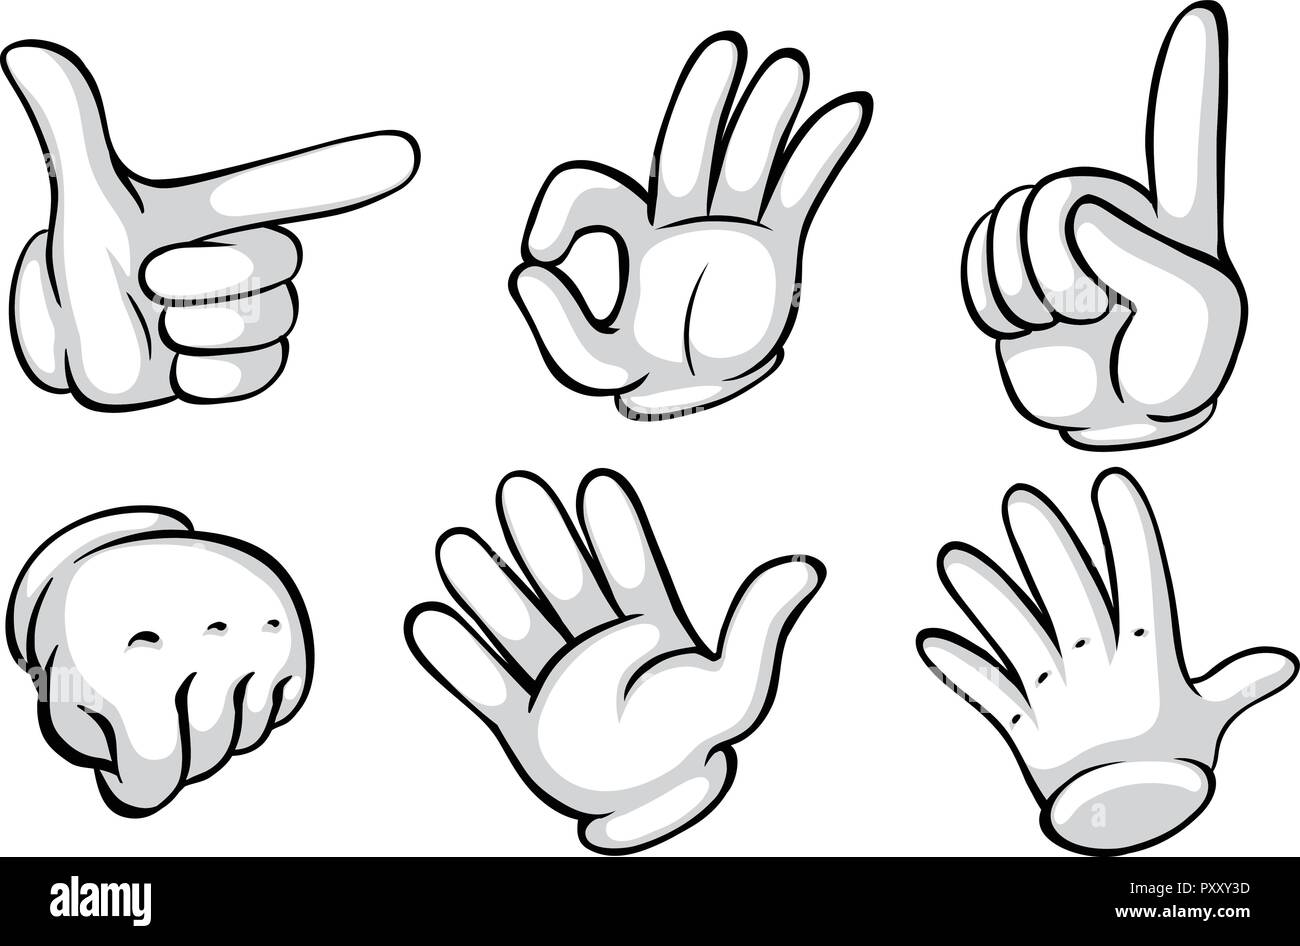 Hand gesture on white background illustration - Stock Vector